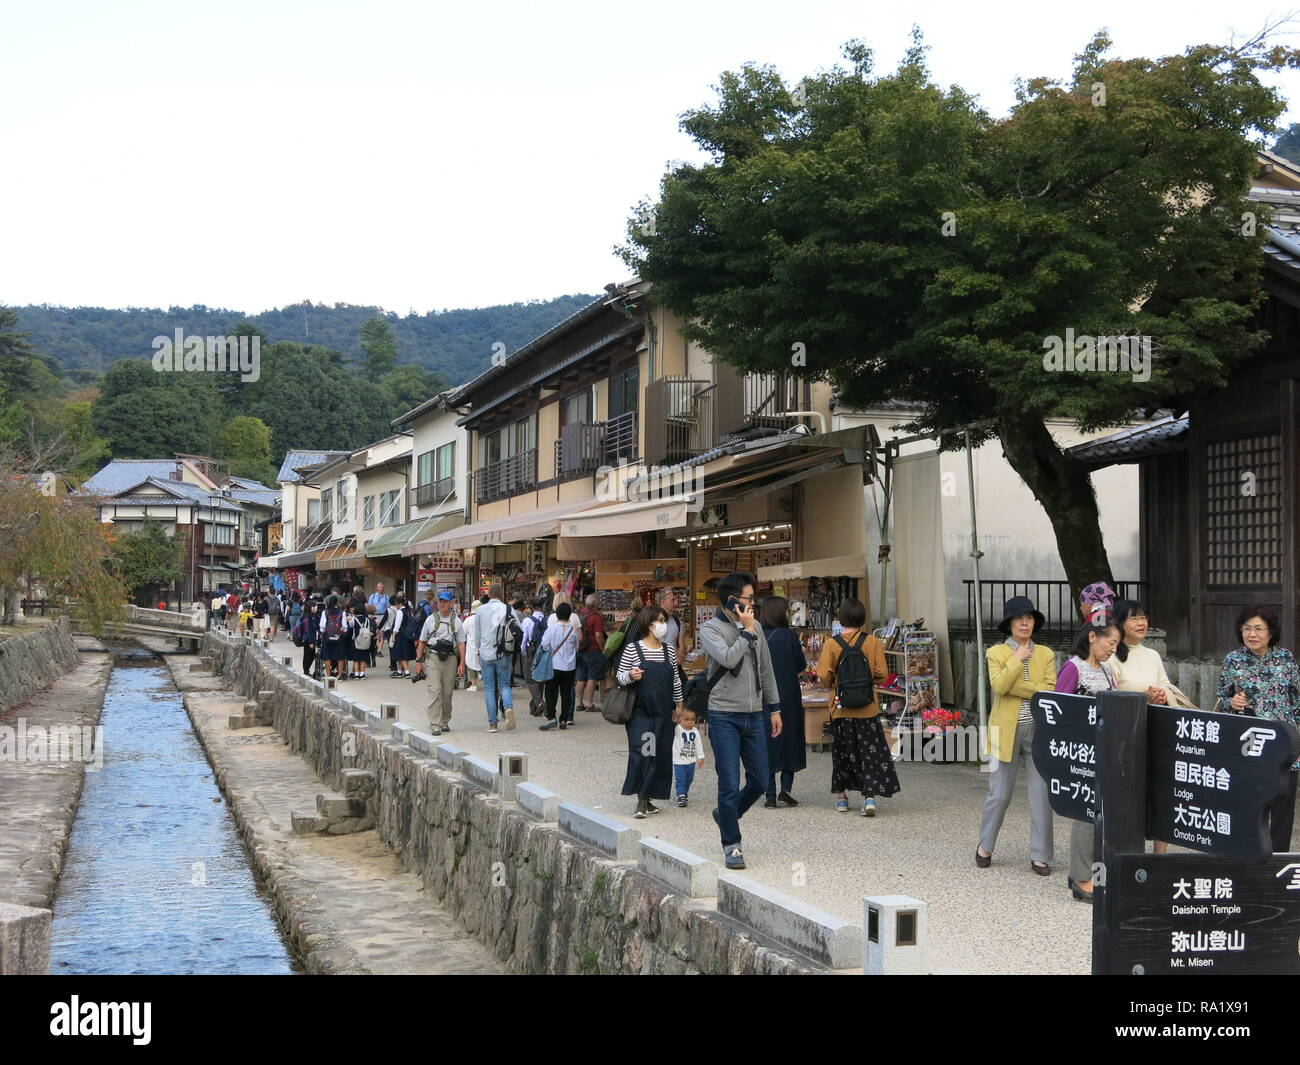 Tourists throng the streets on Miyajima Island, Japan - Stock Image